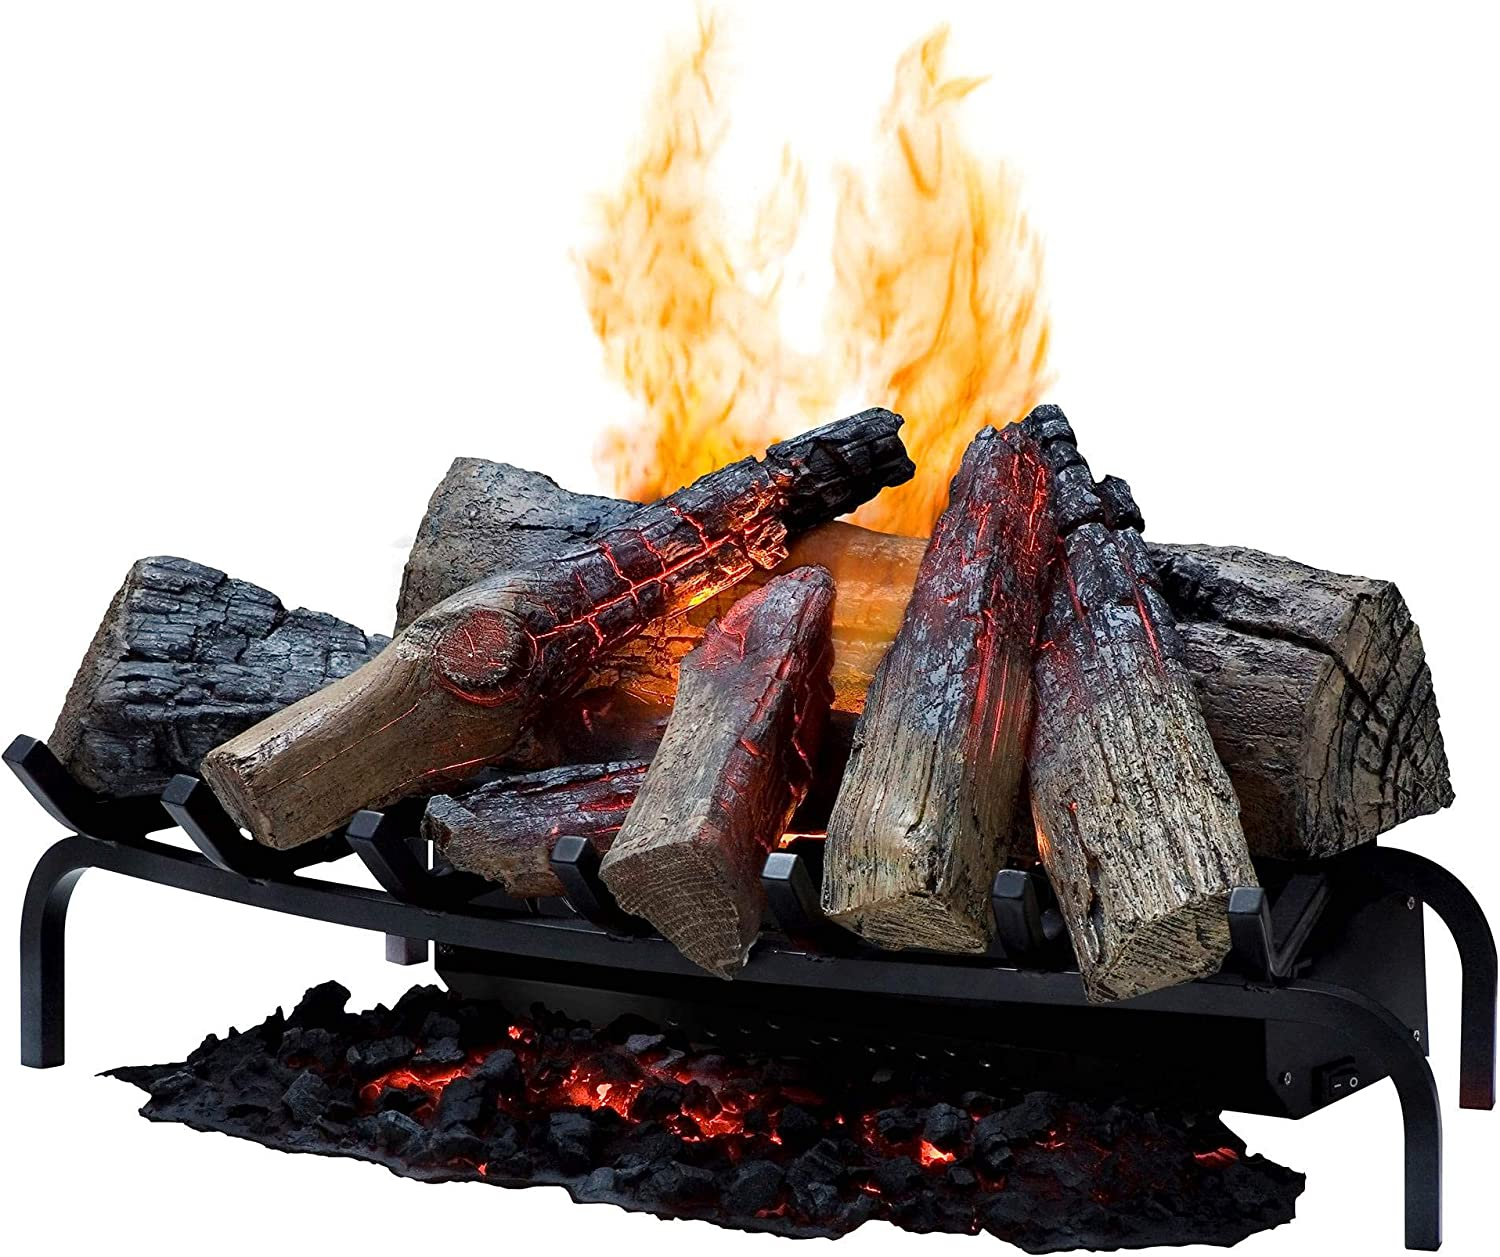 Dimplex Dlgm29 Opti Myst Open Hearth Fireplace Insert With Faux Logs Bed Alabaster Home Improvement